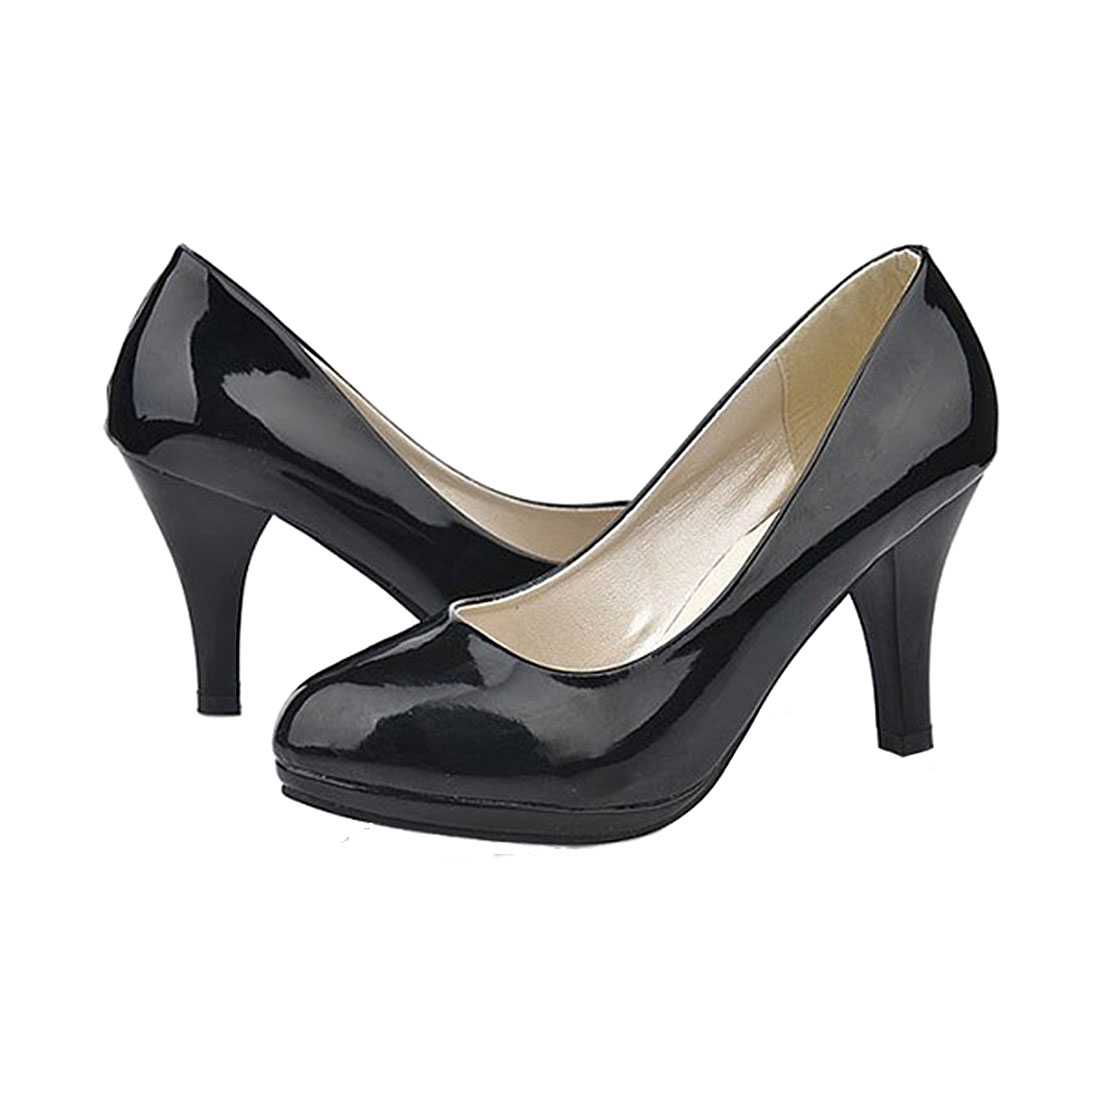 VSEN Hot Classic Sexy office lady round Toe platform low Heels Women wedding Pumps Shoes Black US3.5 2017 hot sale fashion style classic women pumps leisure round toe slip on med heels mature office lady easy walking hot shoes